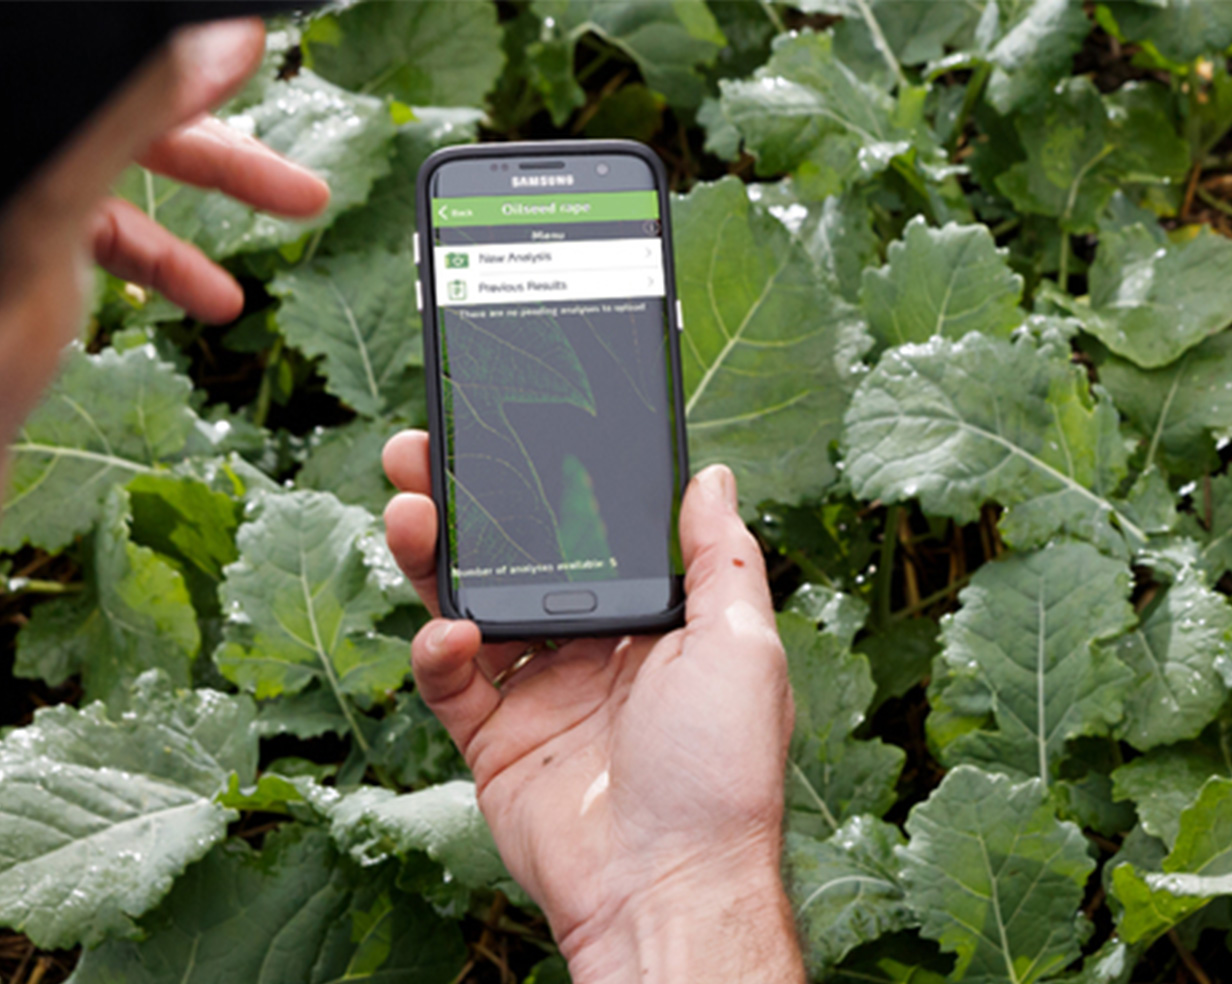 A person holding their phone using the Yara ImageIT app to detect crop deficiencies